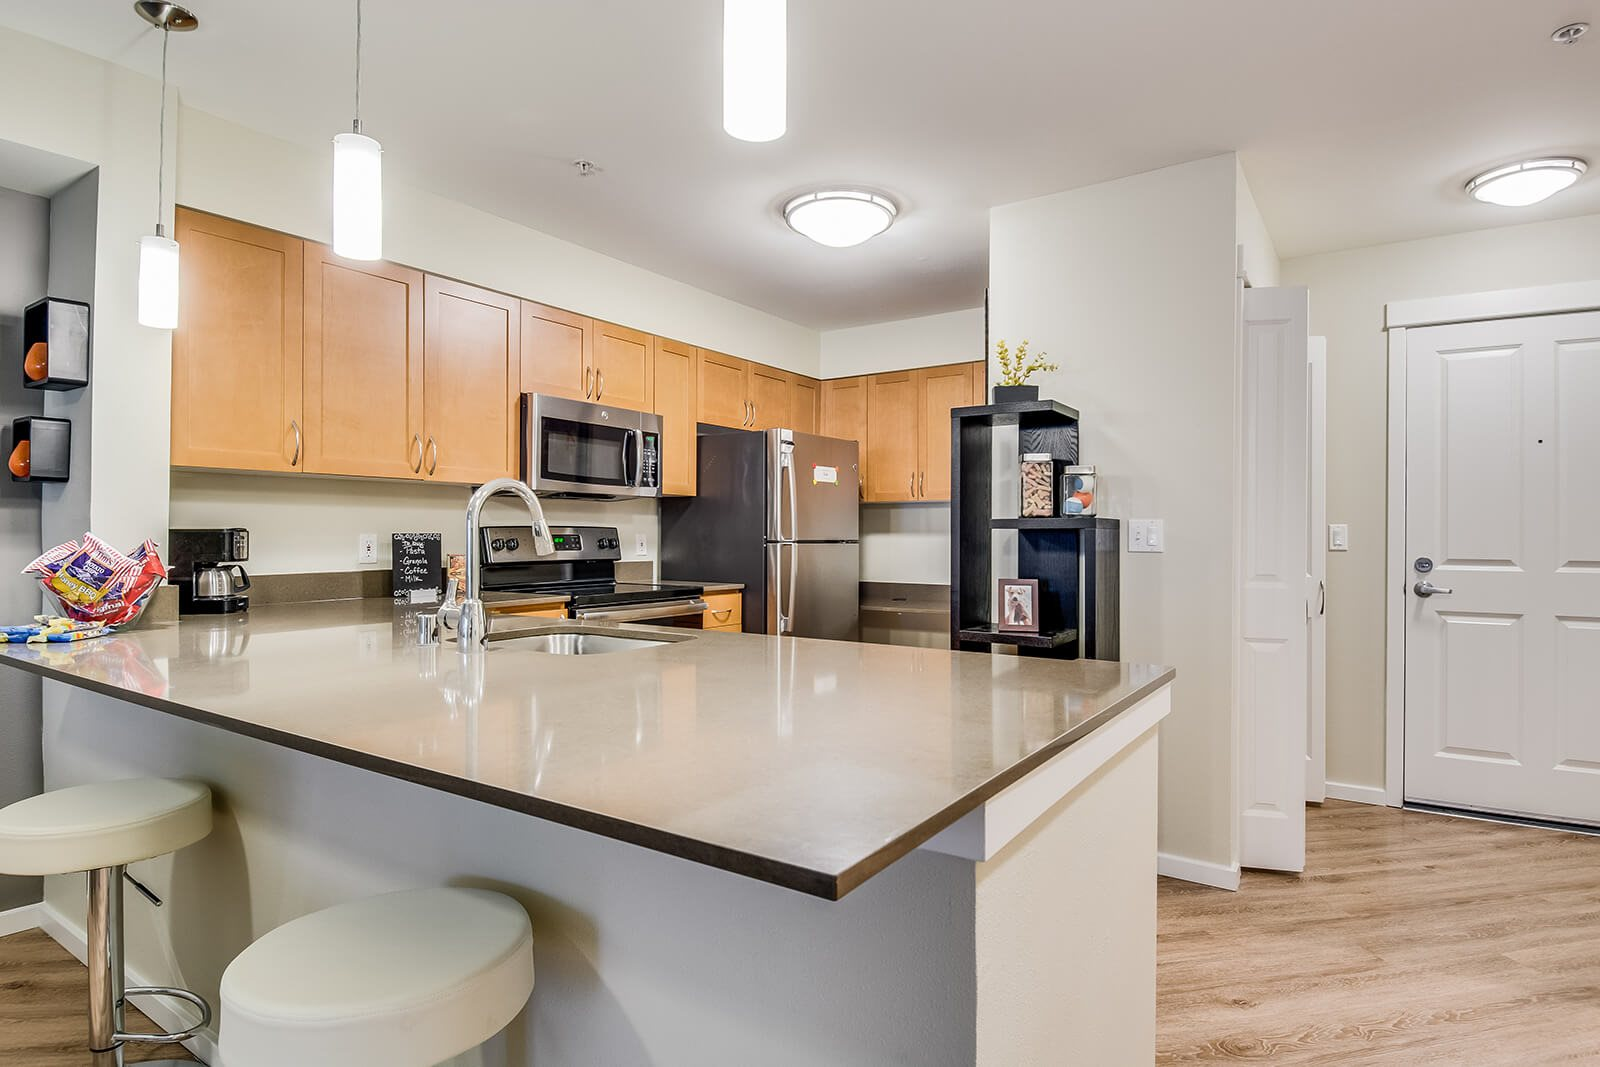 Fully Equipped Kitchen at Tera Apartments, 98033, WA